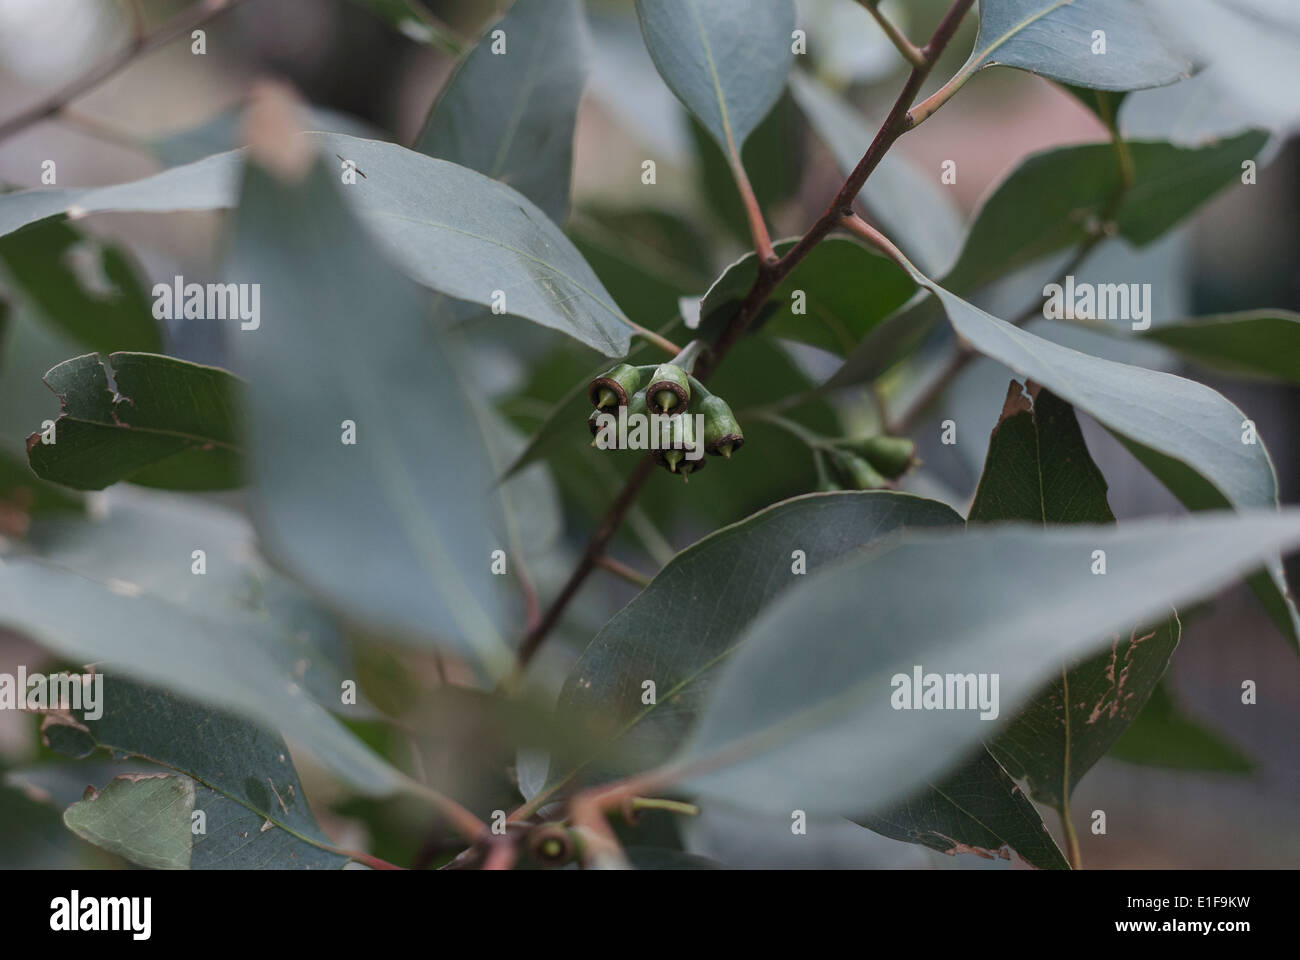 Young Gum Tree Leaves - Stock Image